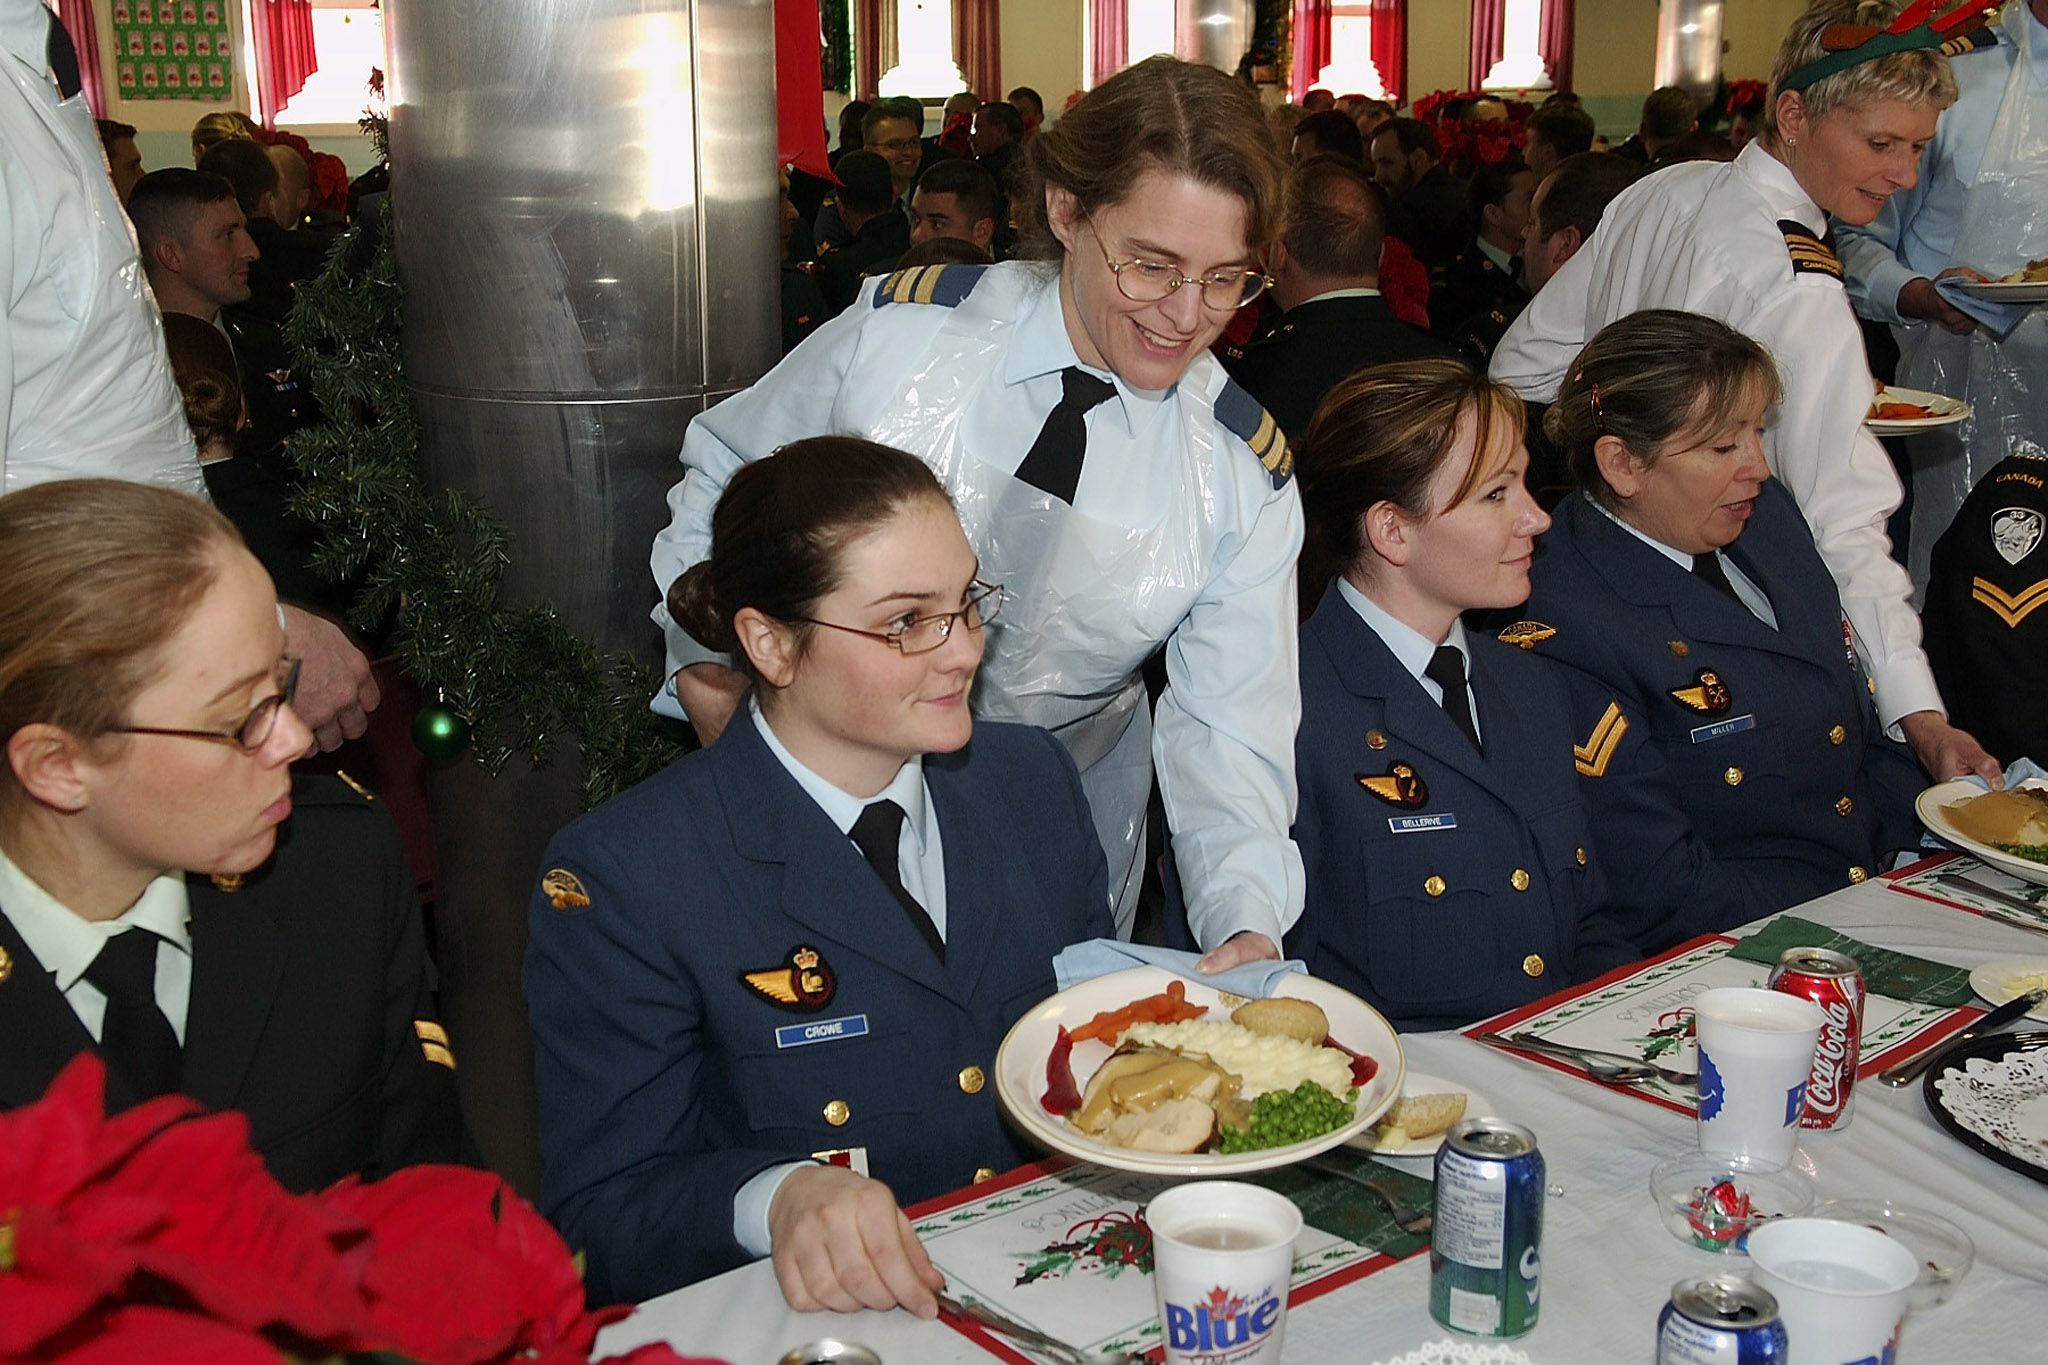 The tradition of the senior personnel serving the junior personnel continues to this day. Here Captain Pauline Quaghebeur serves Aviator Samantha Crowe during the Canadian Forces Support Training Group Christmas dinner at Canadian Forces Base Borden on December 12, 2005. PHOTO: Sergeant Daren Kraus